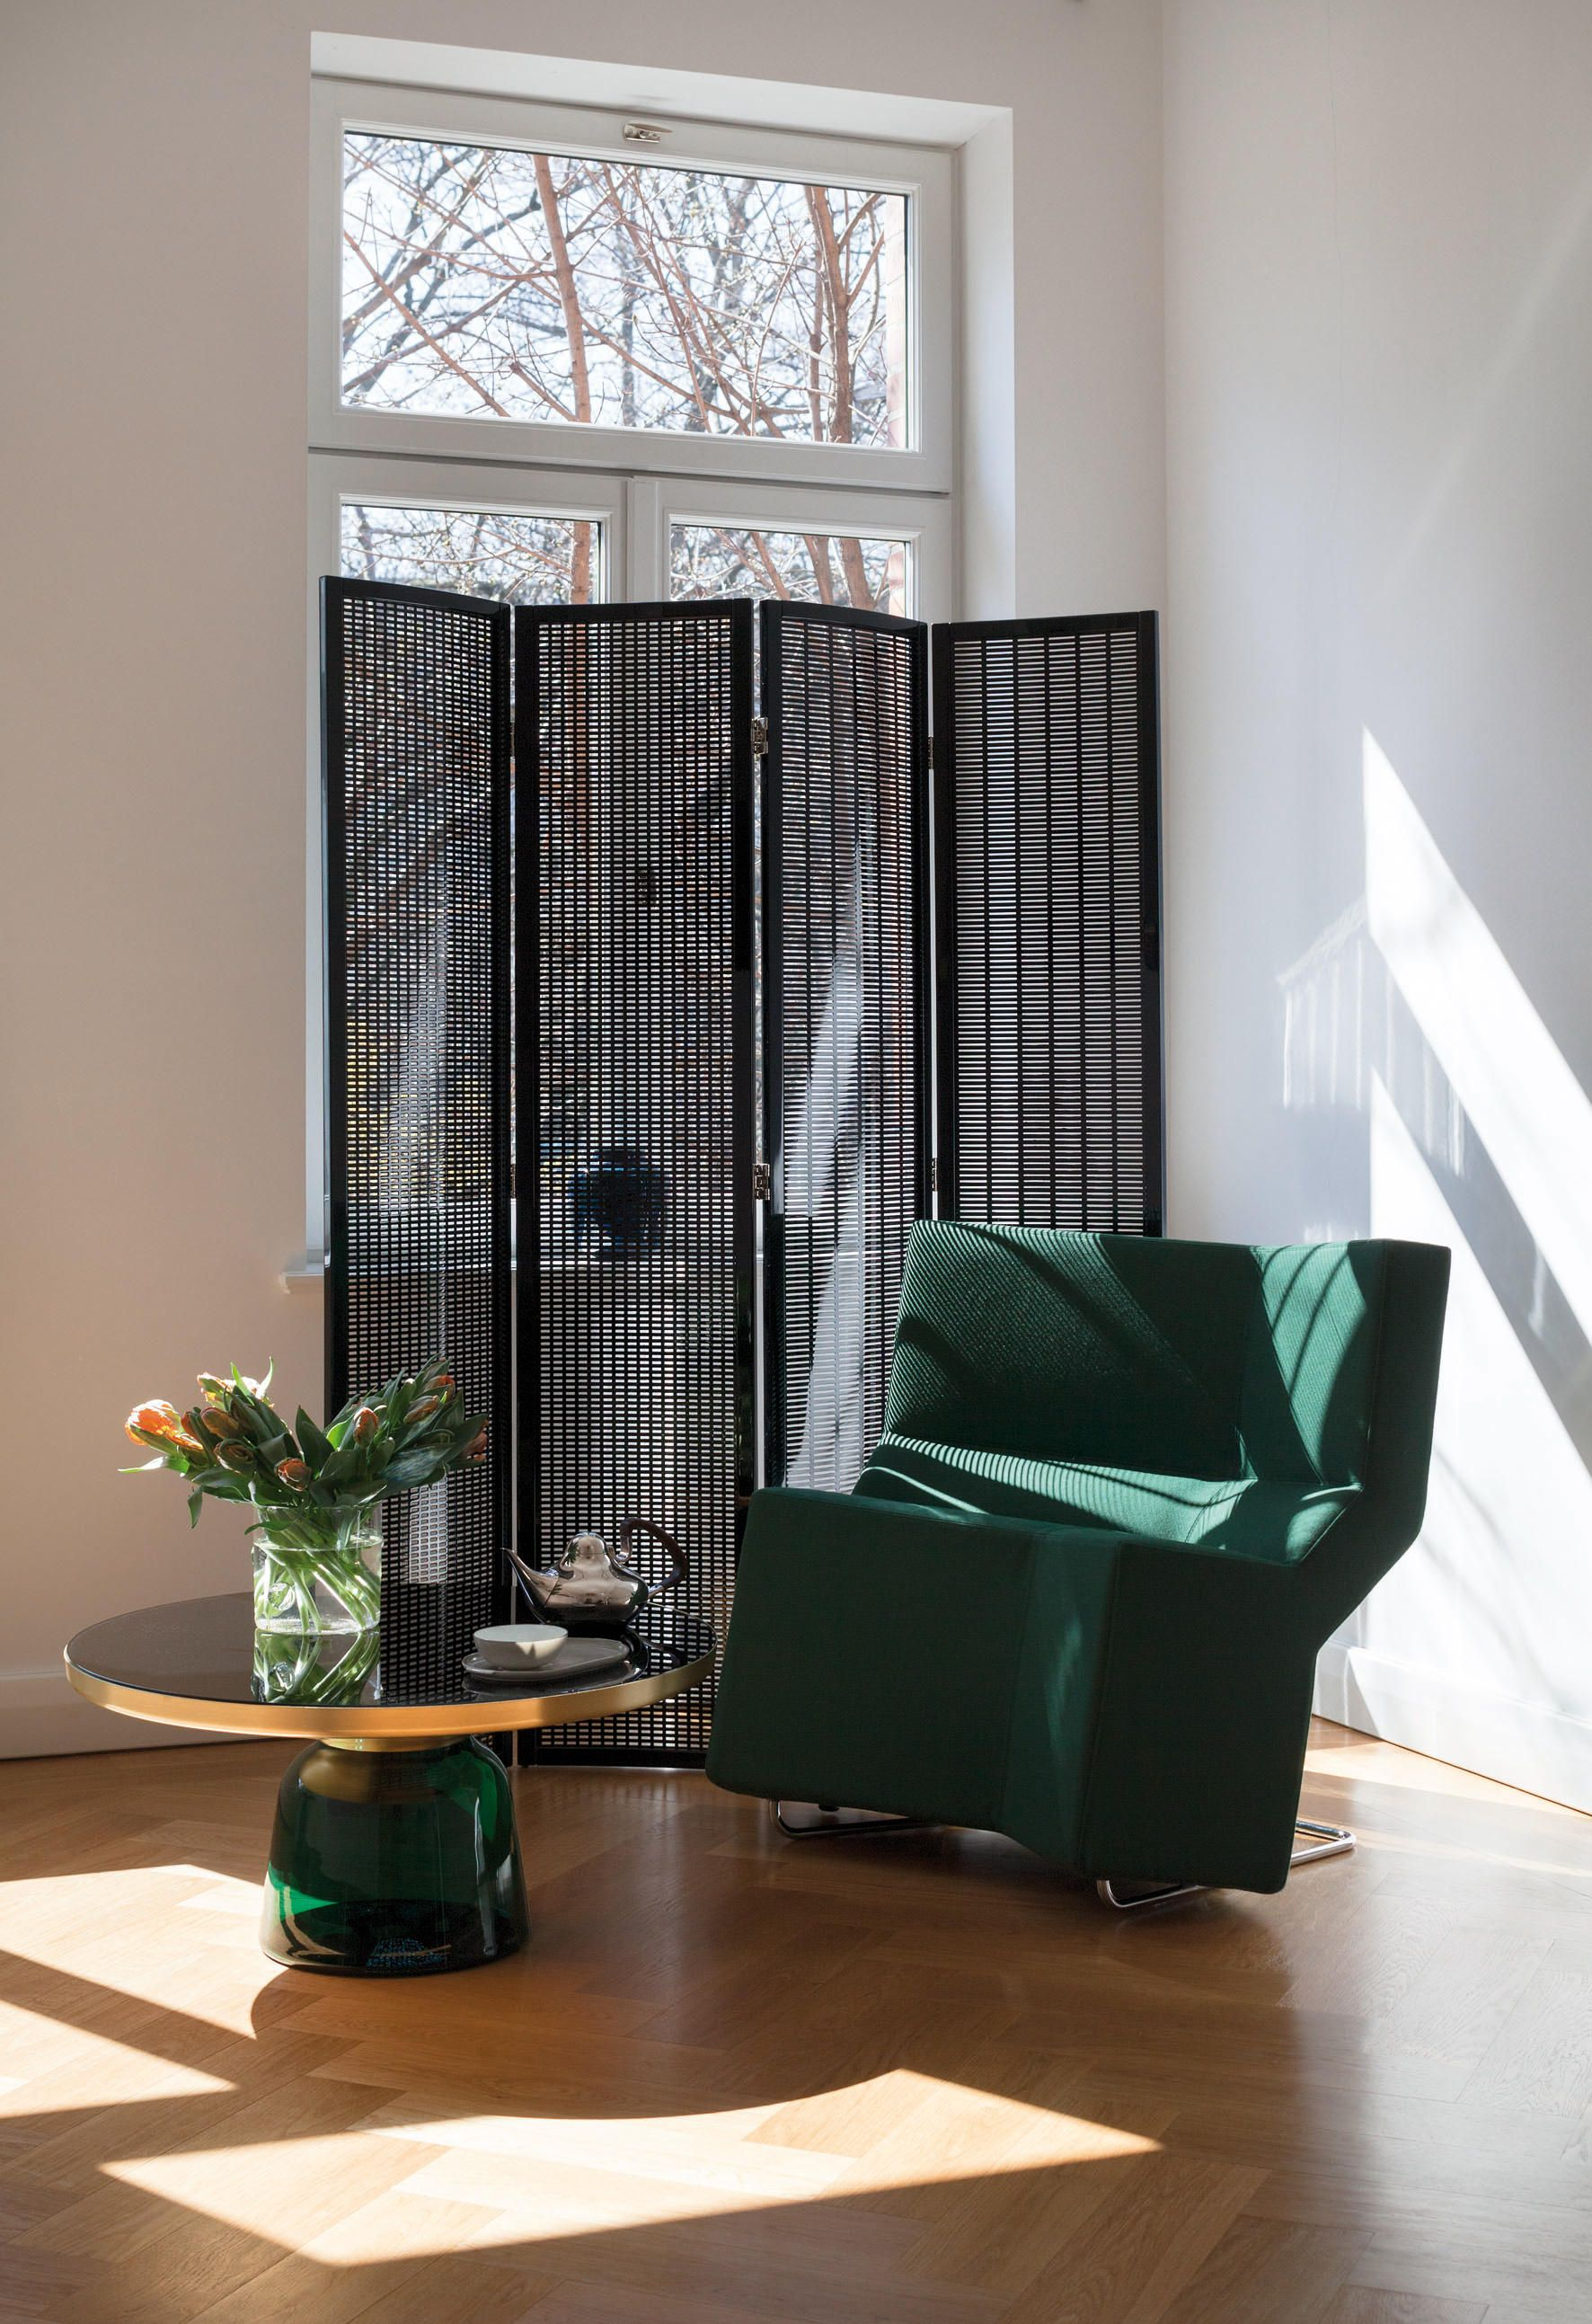 Game Room Sliding Glass Room Dividers Inspirational Gallery: A Modern Classic As Miniature: The Bell Table By Sebastian